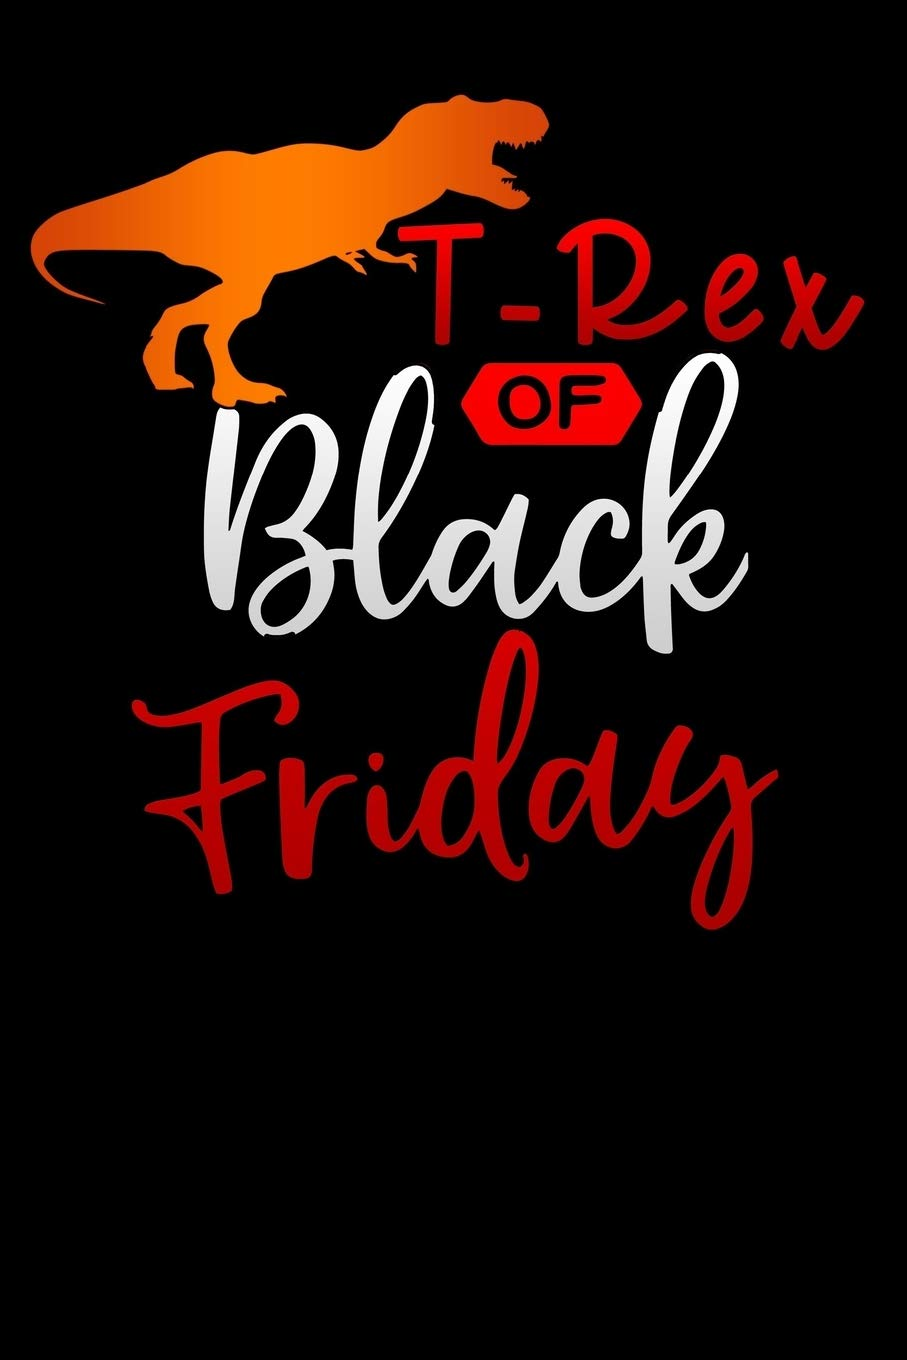 T Rex Of Black Friday Lined Notebook Diary Journal To Write In 6 X9 For Women Girls In Black Friday Deals Offers Publishers Blackfri 9781688058255 Amazon Com Books